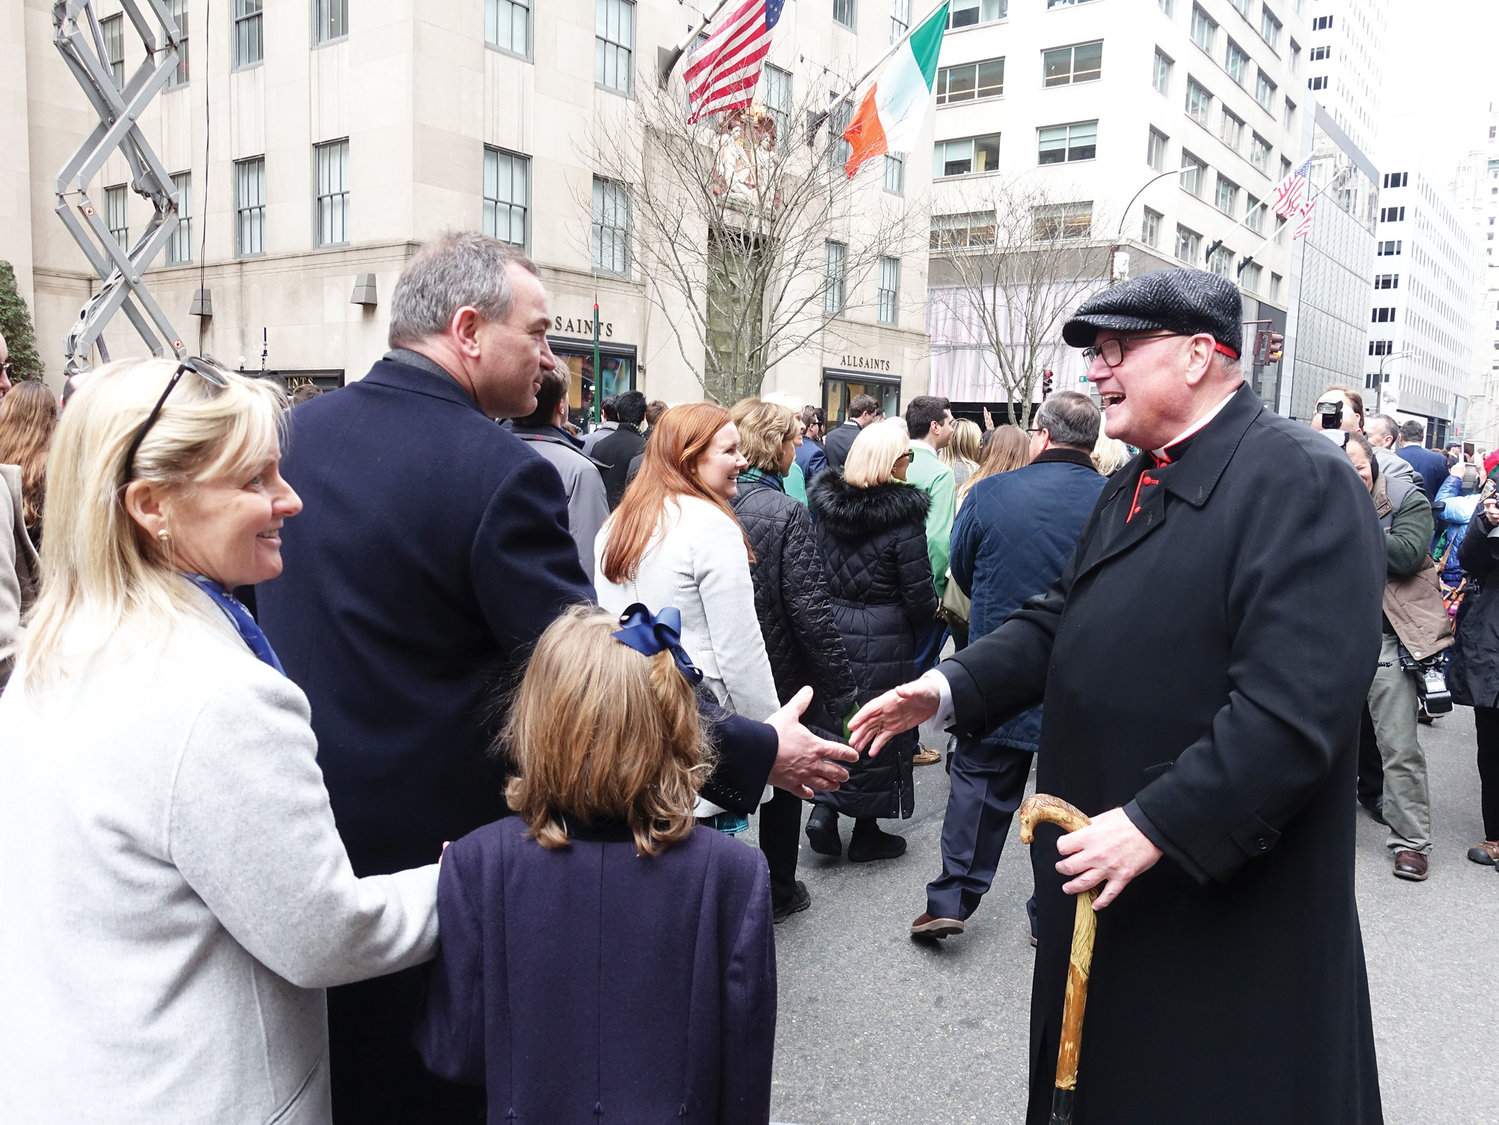 Cardinal Dolan greets marchers in front of St. Patrick's Cathedral.